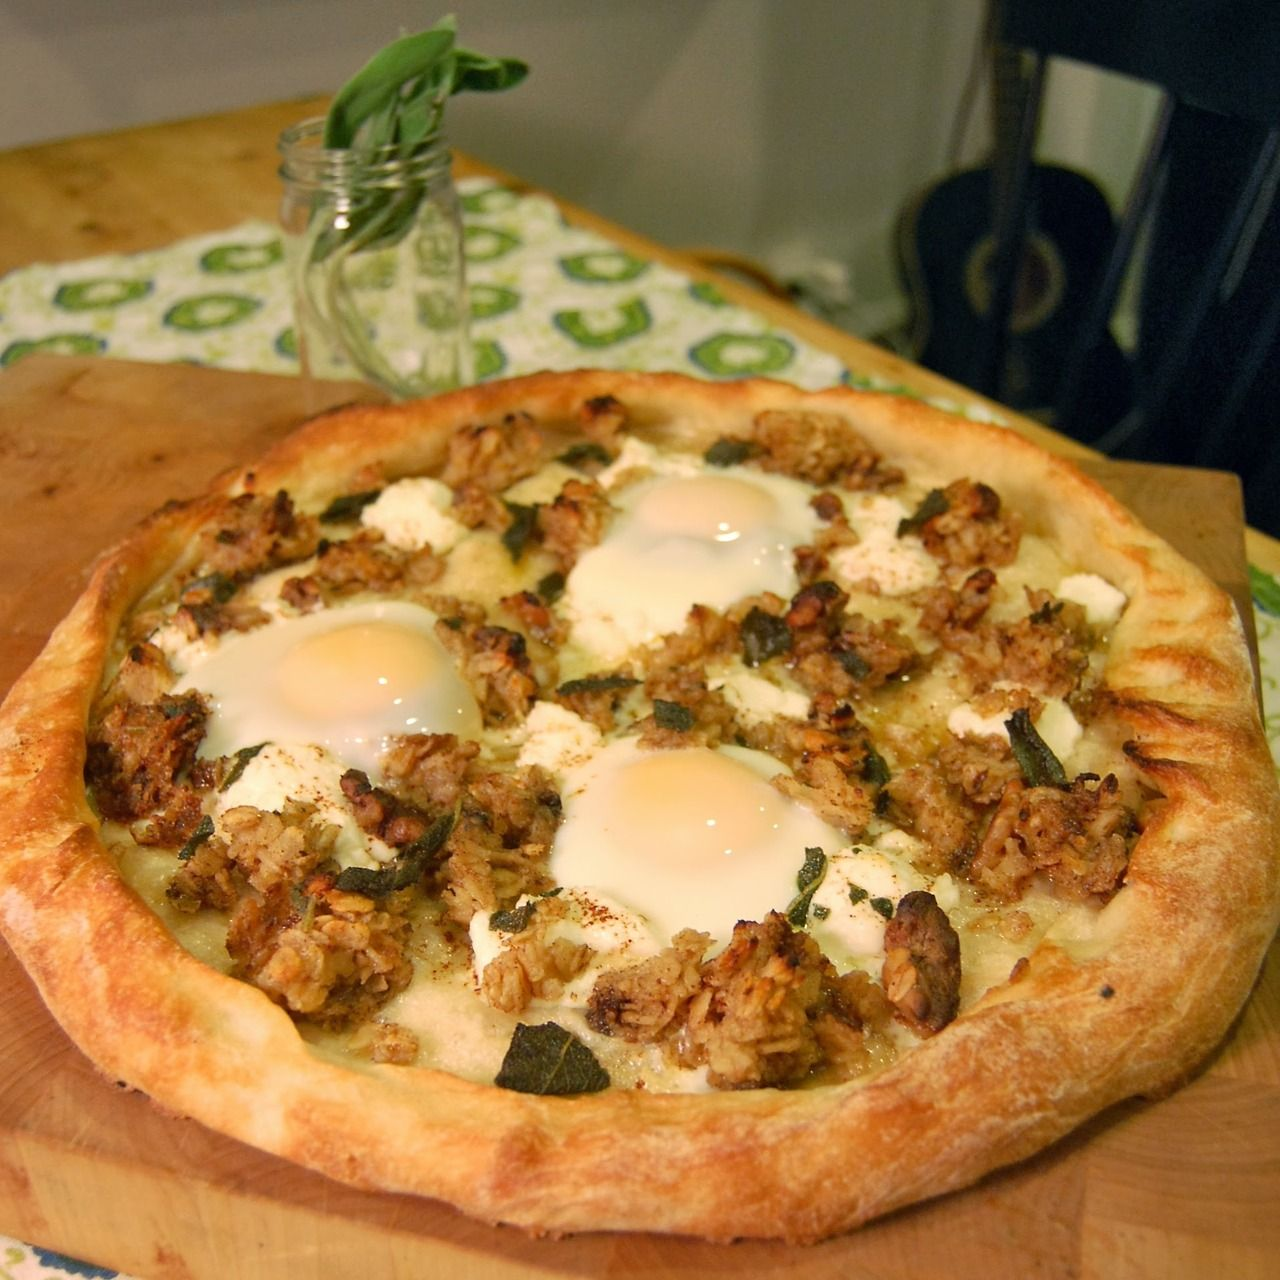 #PizzaTuesday Baked Oatmeal & Eggs #Pizza: Ricotta, baked oatmeal with walnuts & cinnamon, brown butter with fried sage & lemon juice, baked eggs